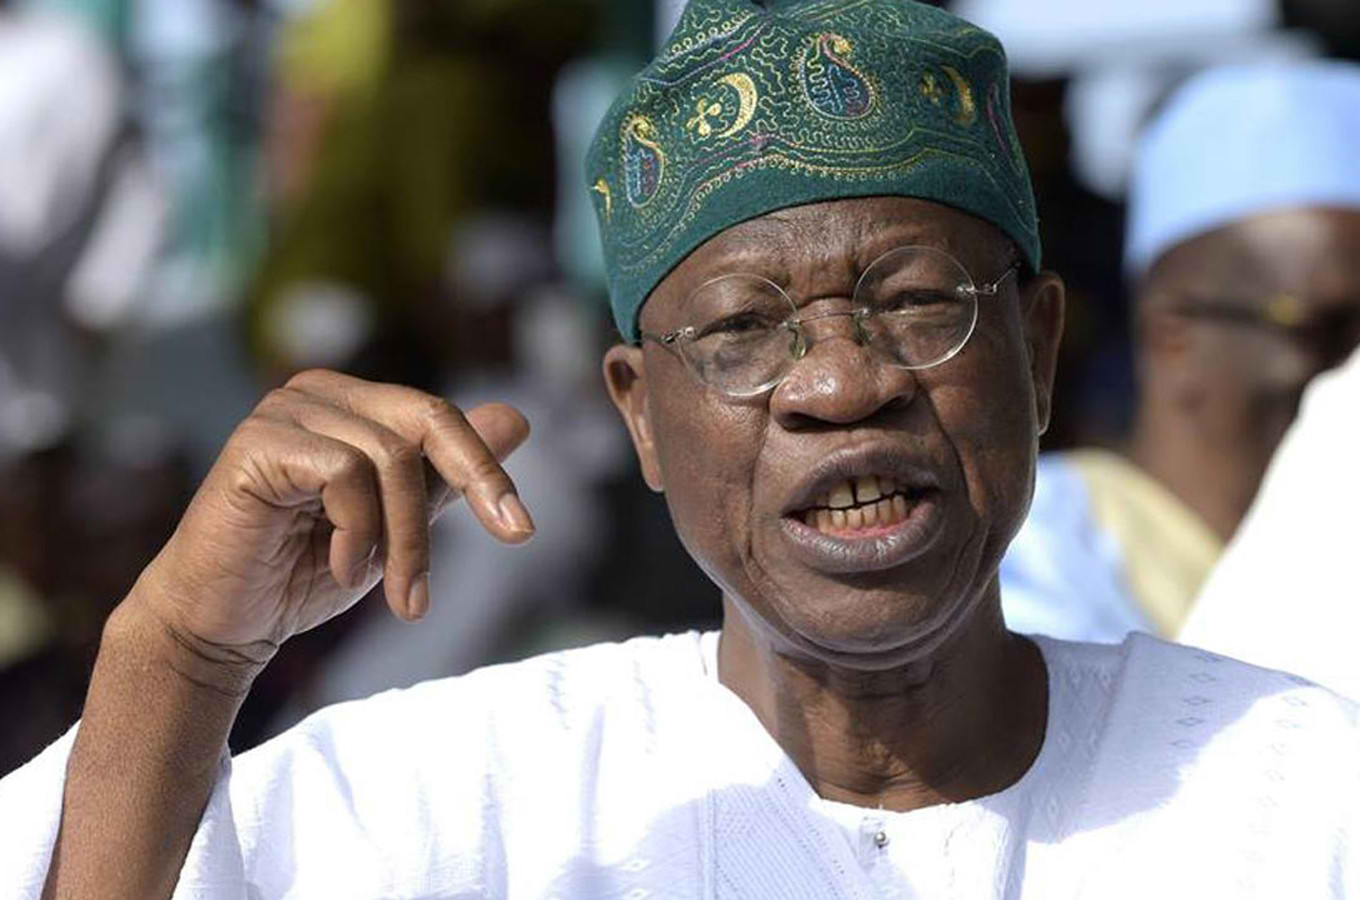 lai mohammed, Nigeria, Nigeria's Minister of Information and Culture, All Progressives Congress, National Publicity Secretary, Nigerian lawyer, lawyer, Minister of Information and Culture, Alhaji, Miss Polo International Beauty Pageant, Nigeria Polo